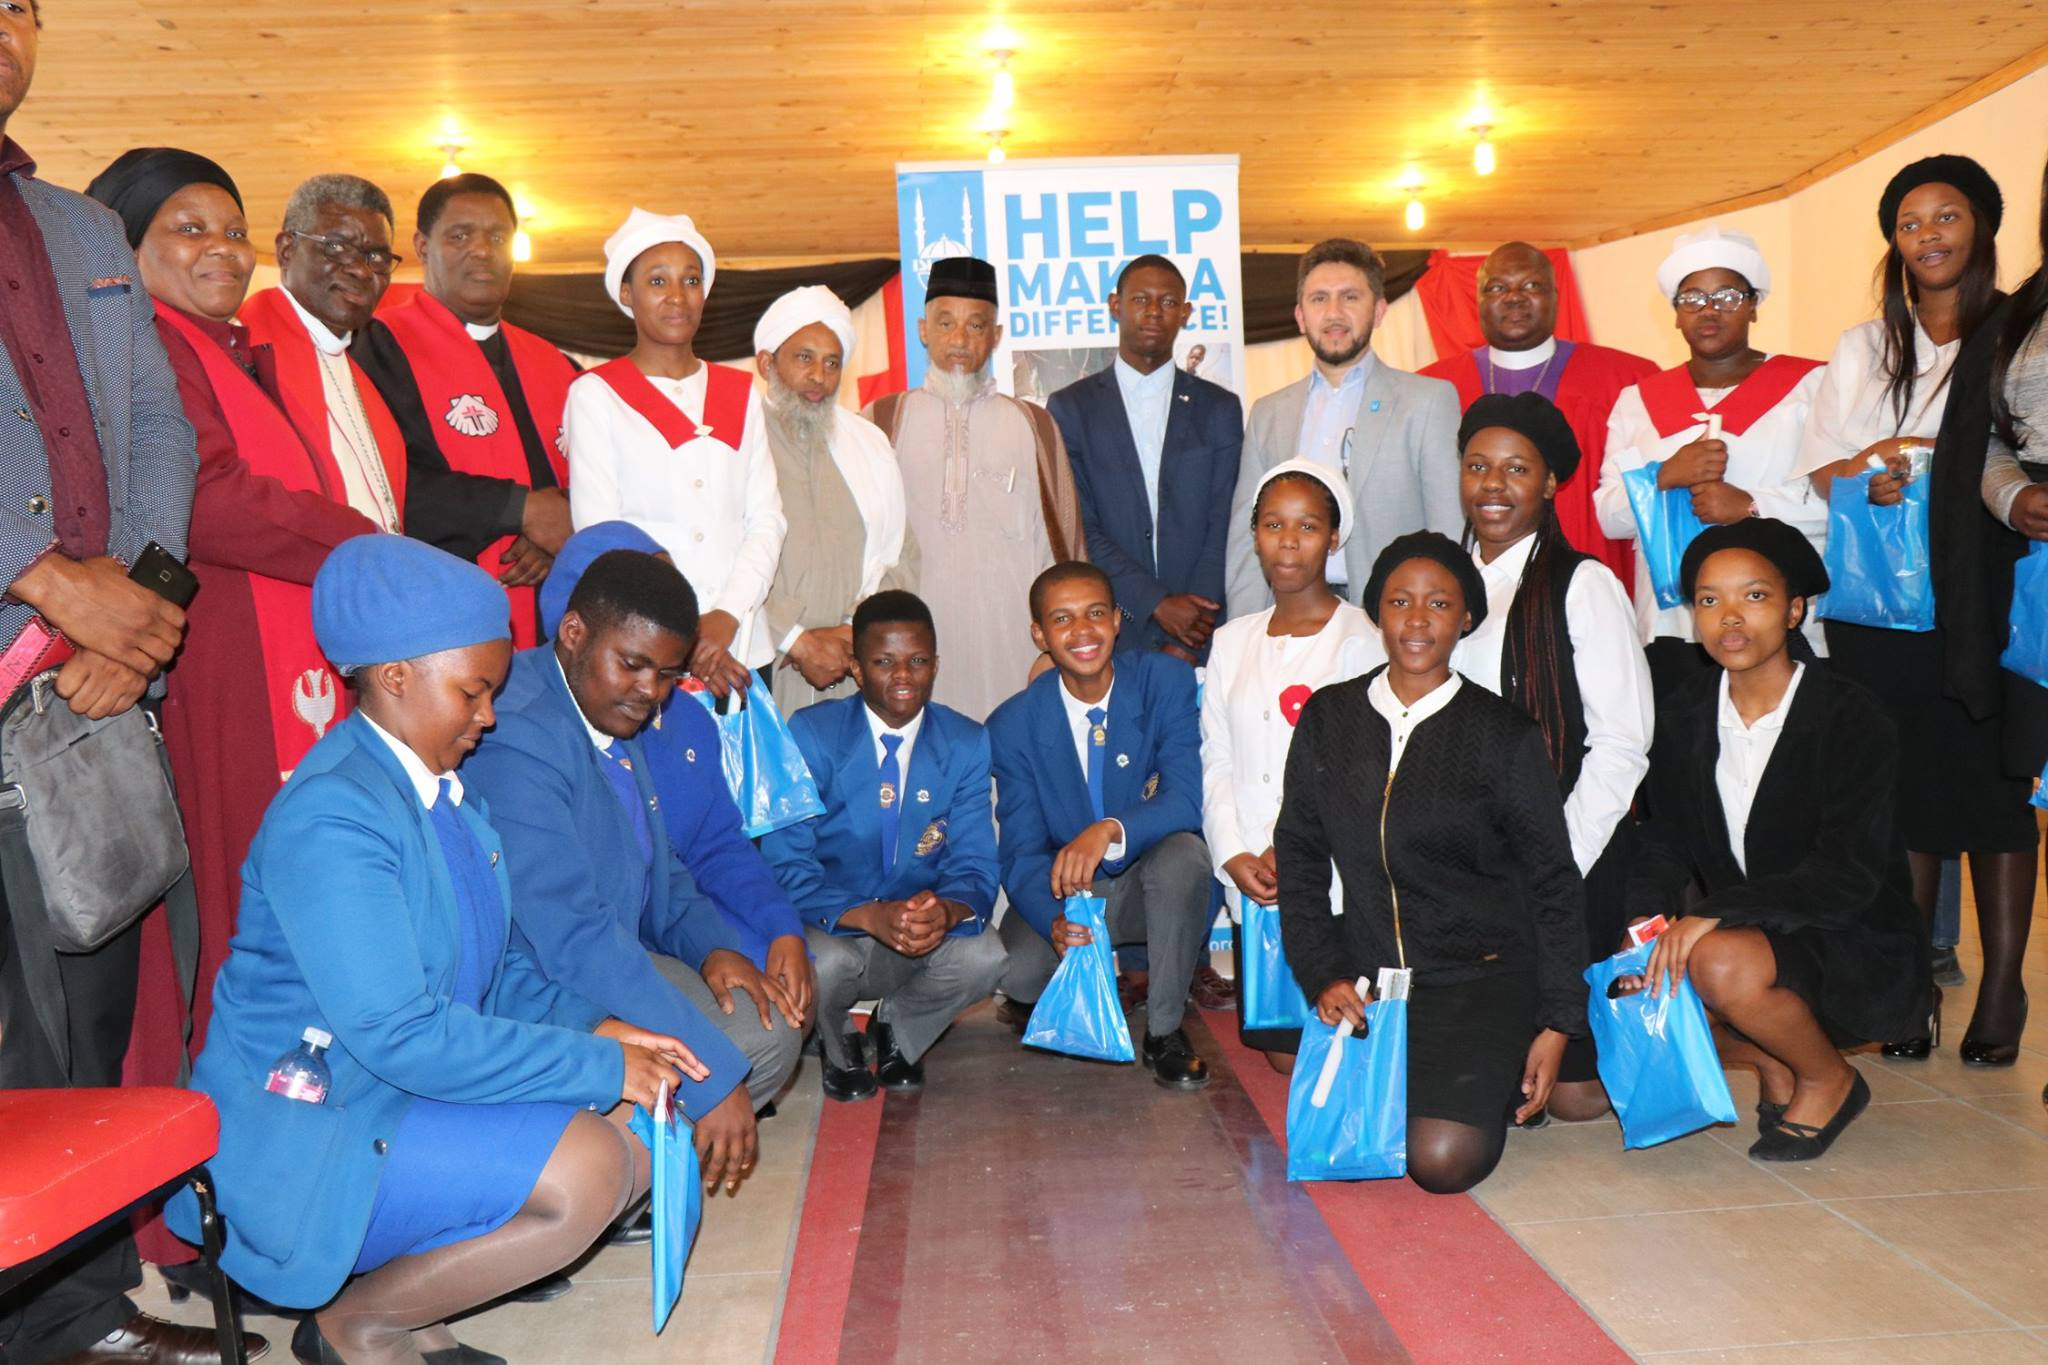 matrics receive stationery packs at a special interfaith service - pic6 - Matrics receive stationery packs at a special interfaith service